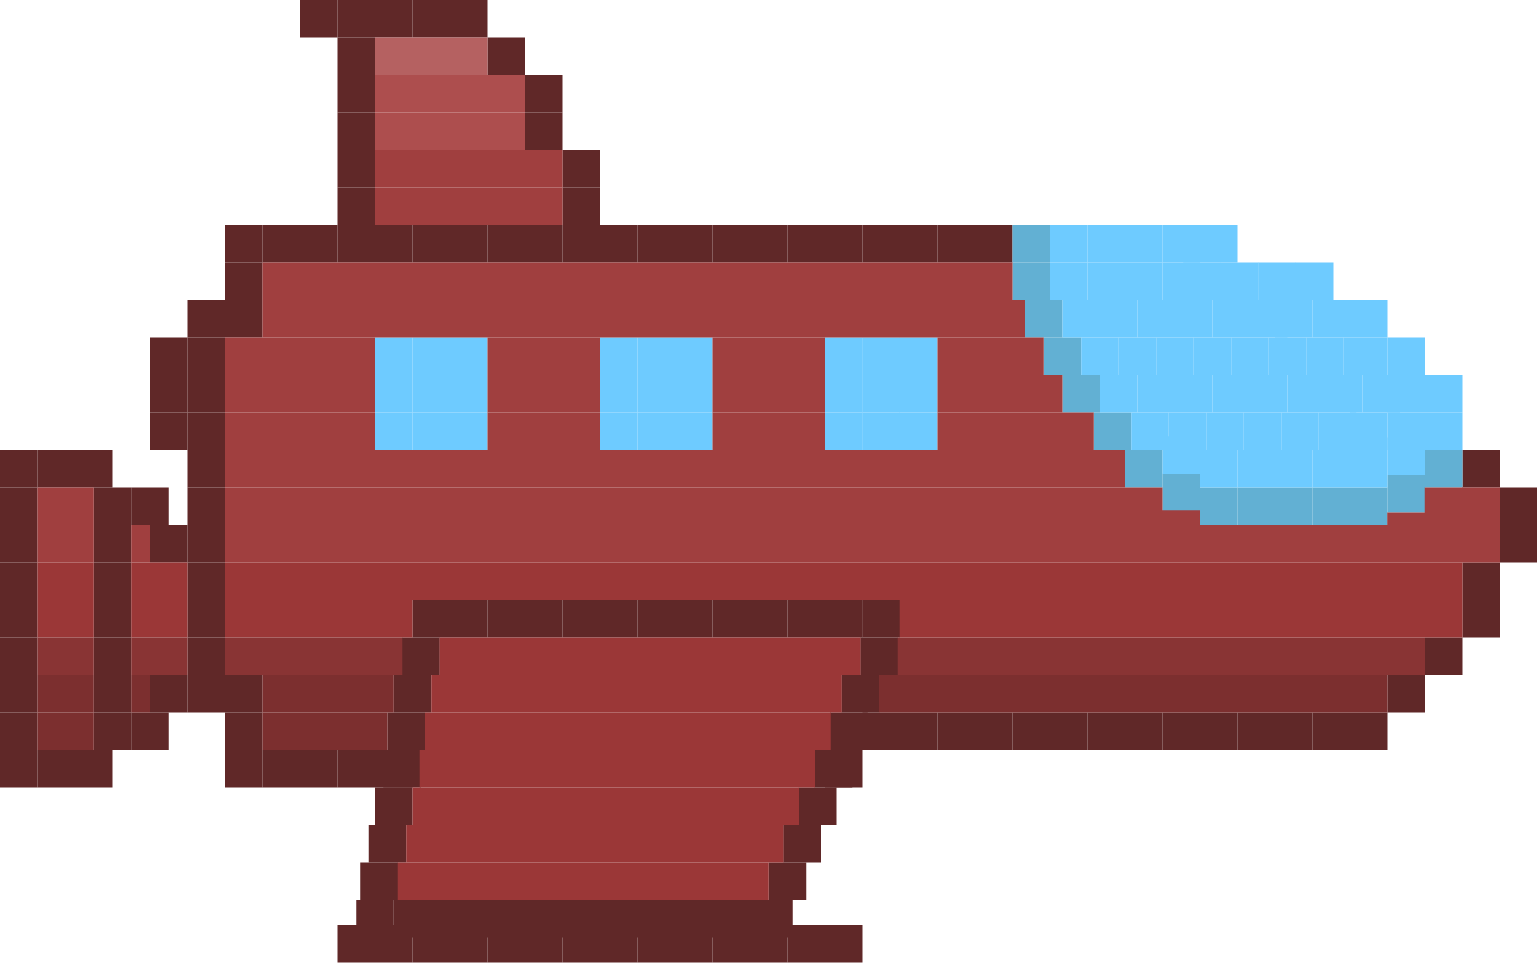 8 bit spaceship png. Illustration updates experimental design